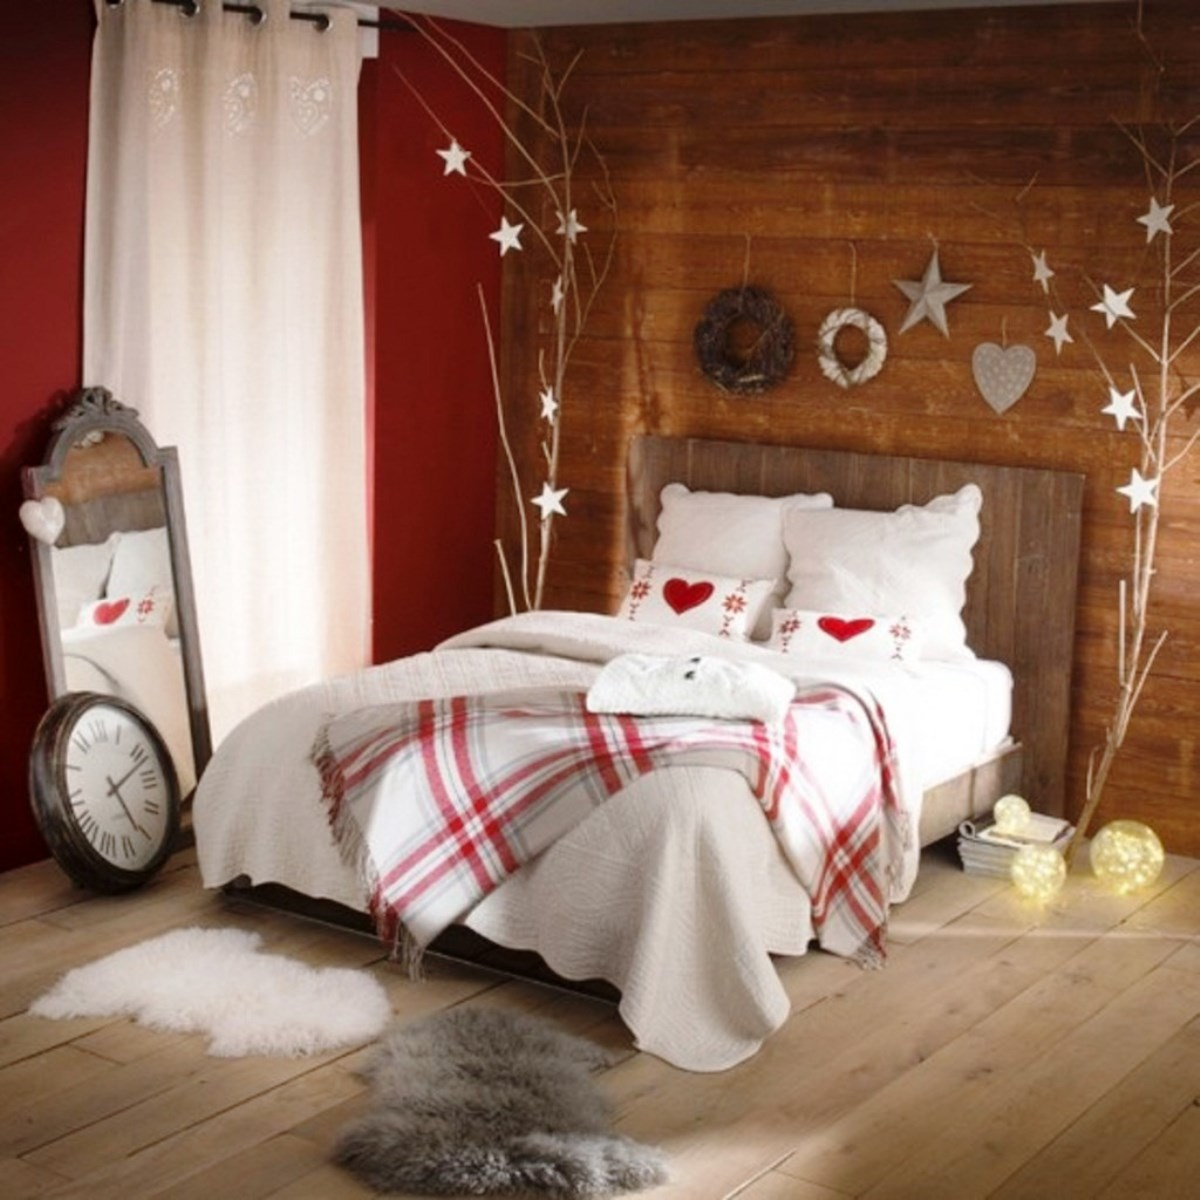 Bedroom Decorations 30 Christmas Bedroom Decorations Ideas